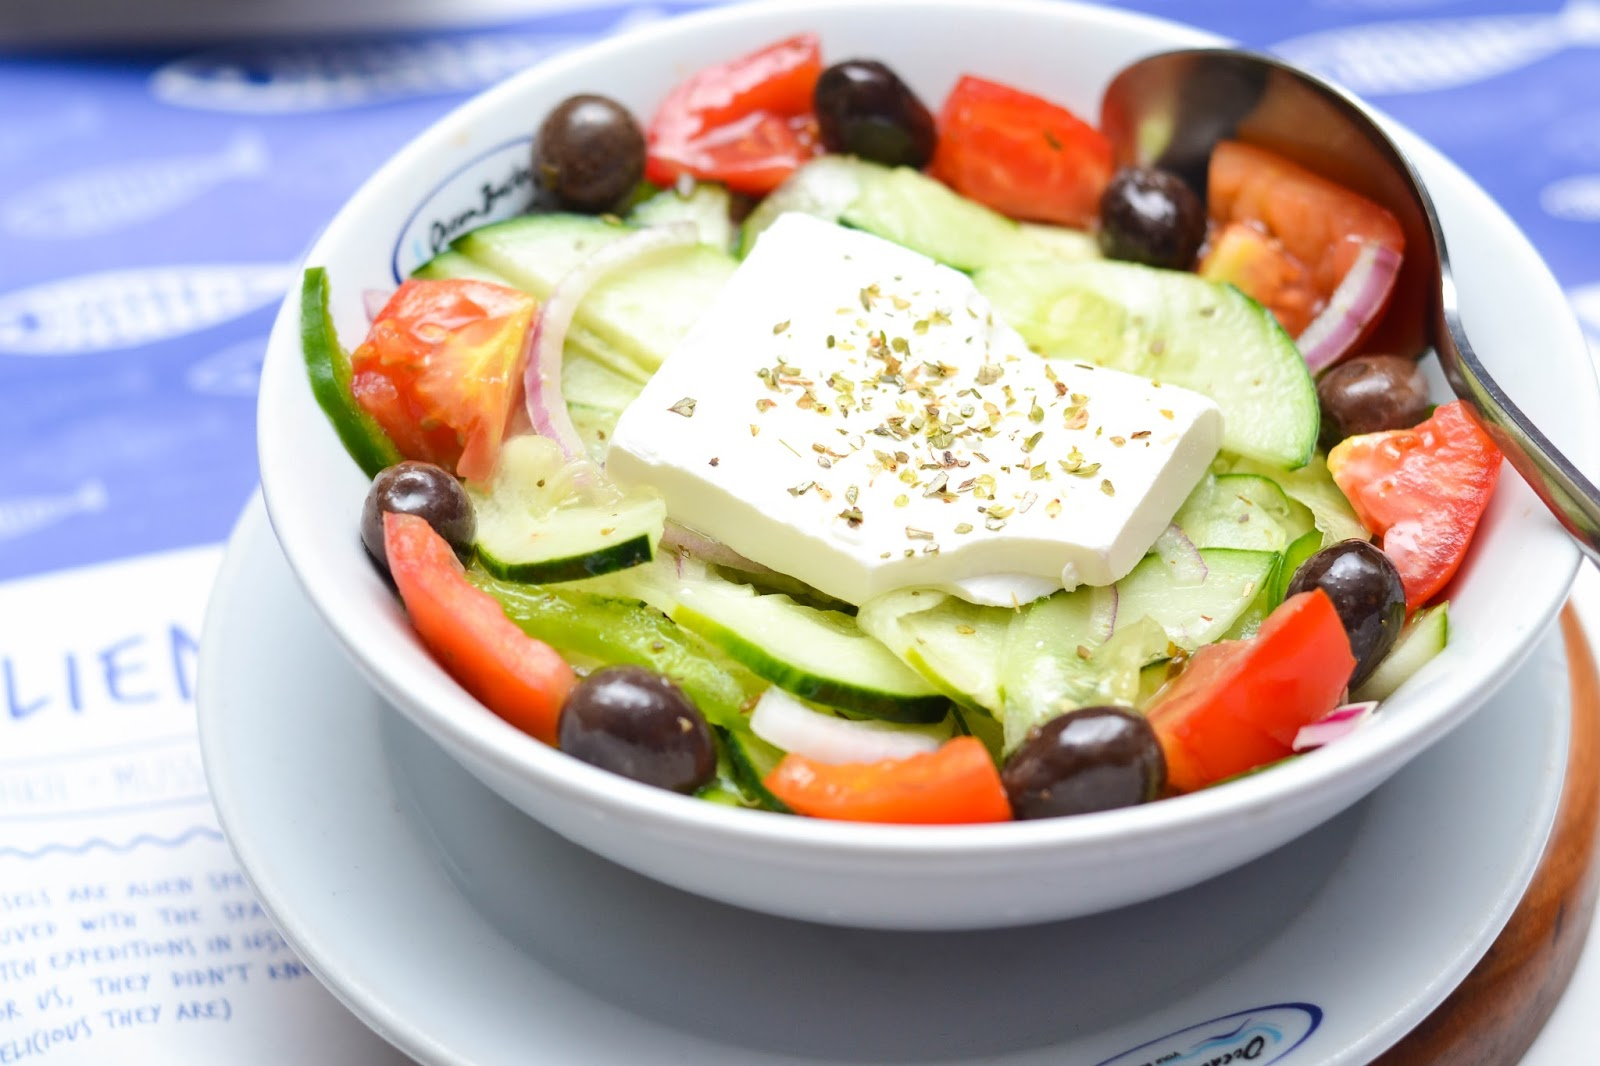 Ocean Basket Mediterranean Vegetable Salad with Halloumi Cheese